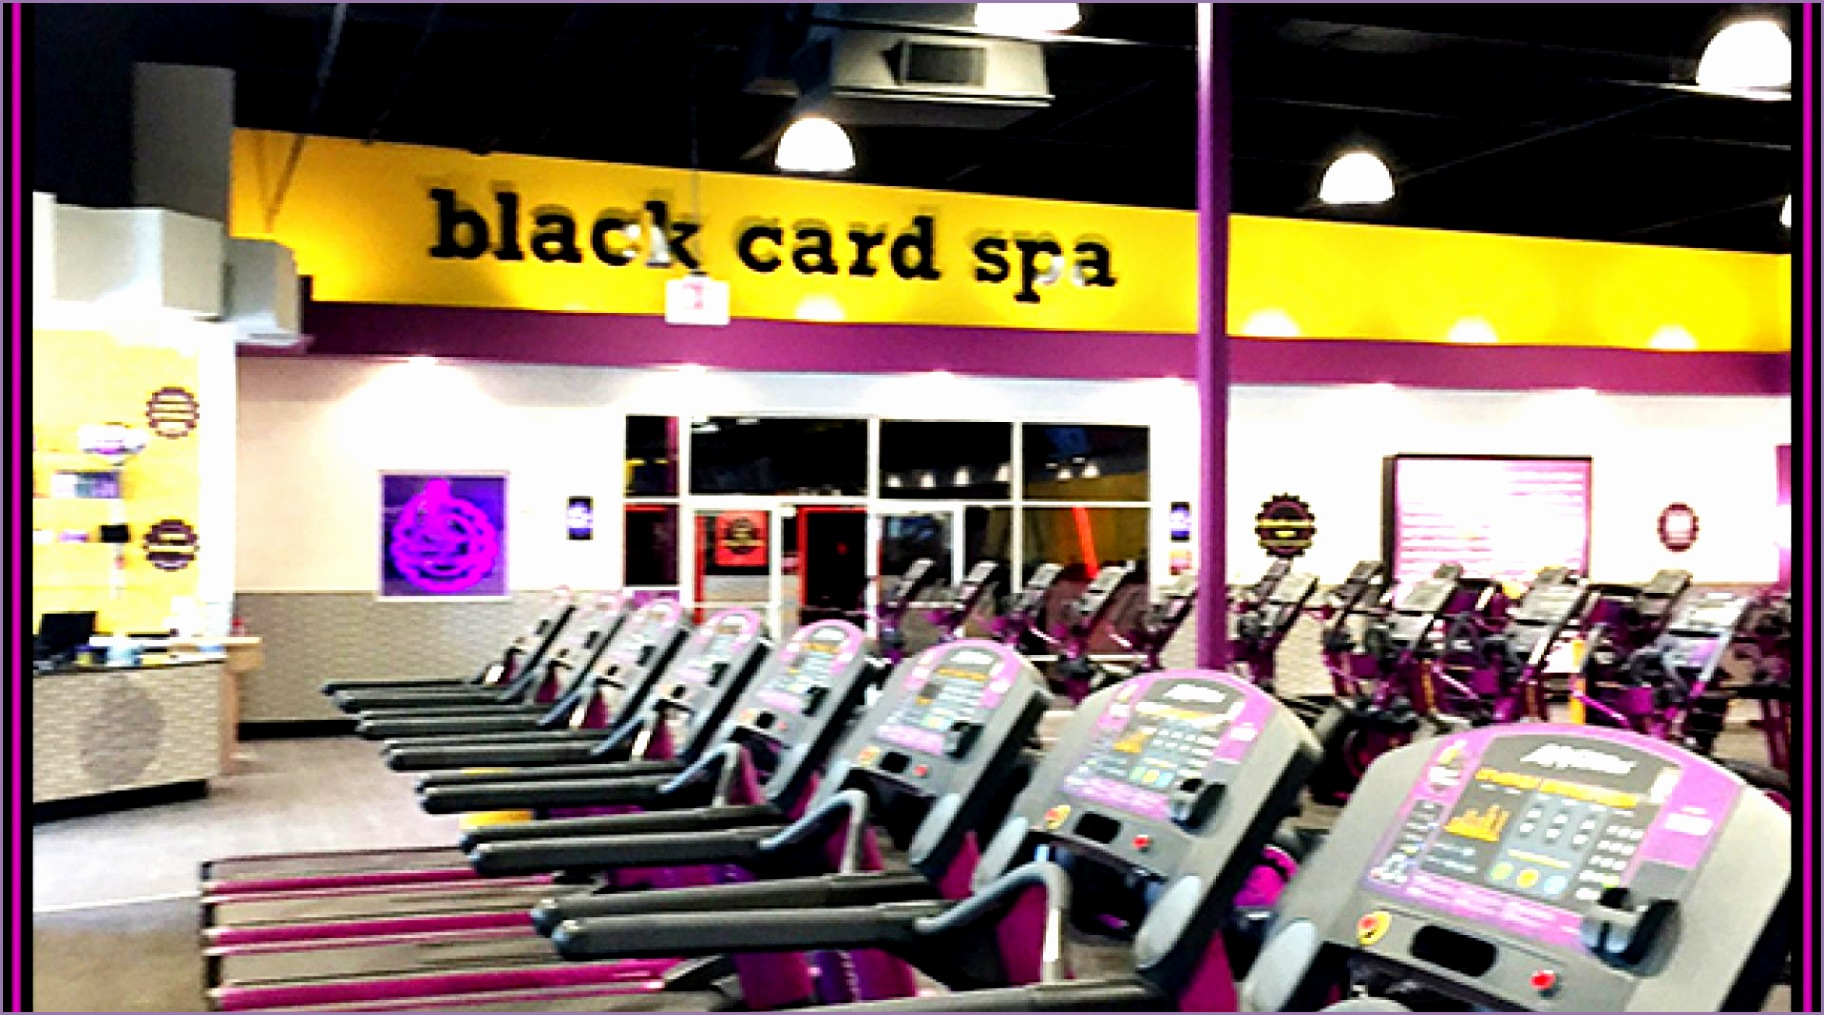 planet fitness black card annual fee date